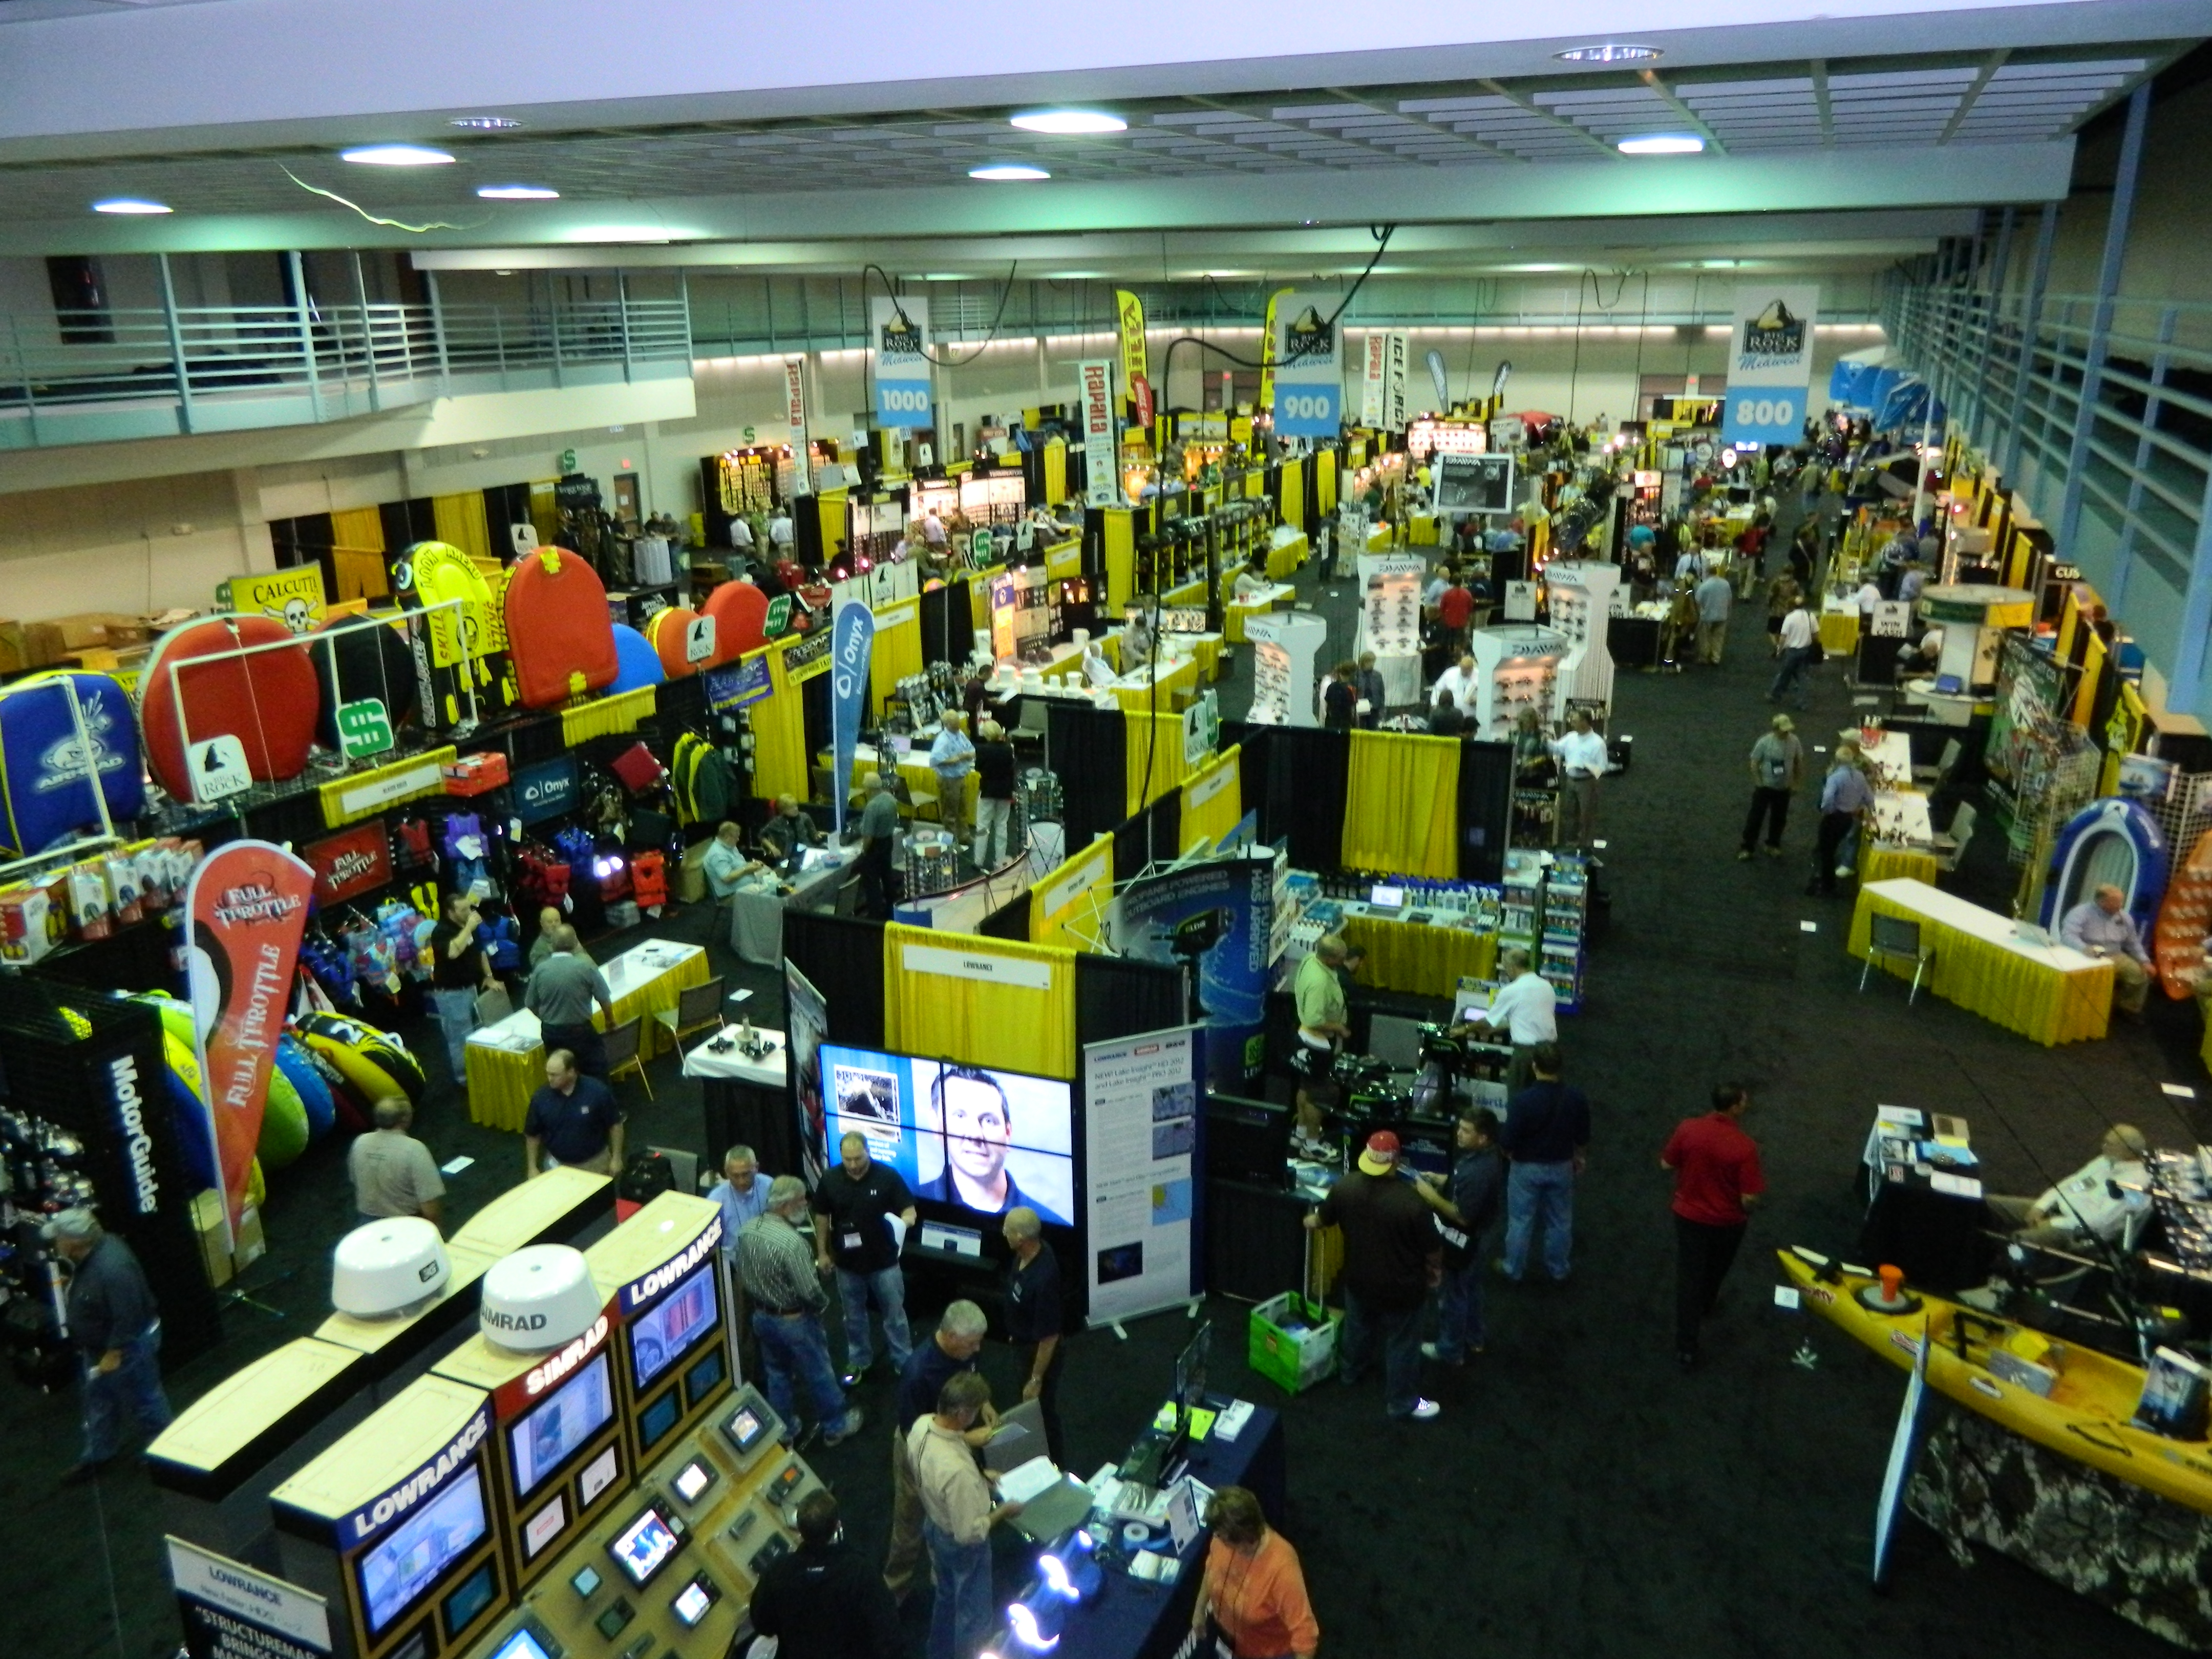 Aerial view of people and booths in convention hall for Big Rock Sports